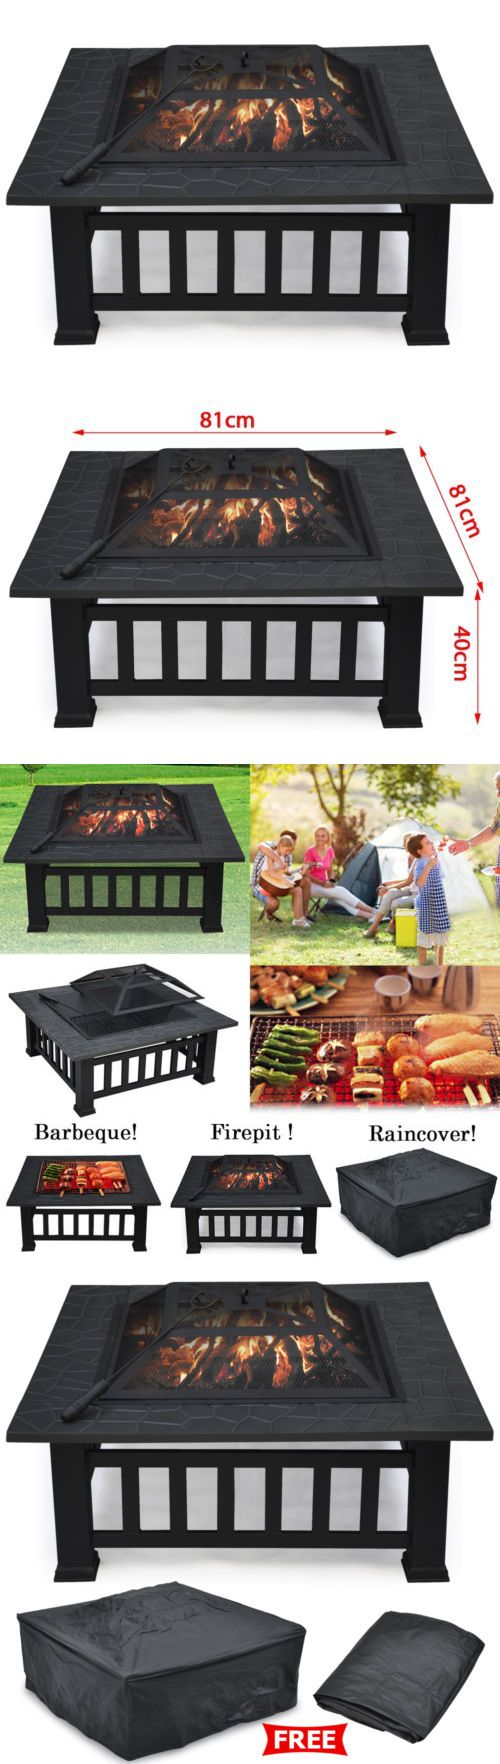 Fire Pits and Chimineas 85916: Square Metal 32 Fire Pit Outdoor Patio Garden Backyard Stove Firepit Brazier -> BUY IT NOW ONLY: $67.99 on eBay!